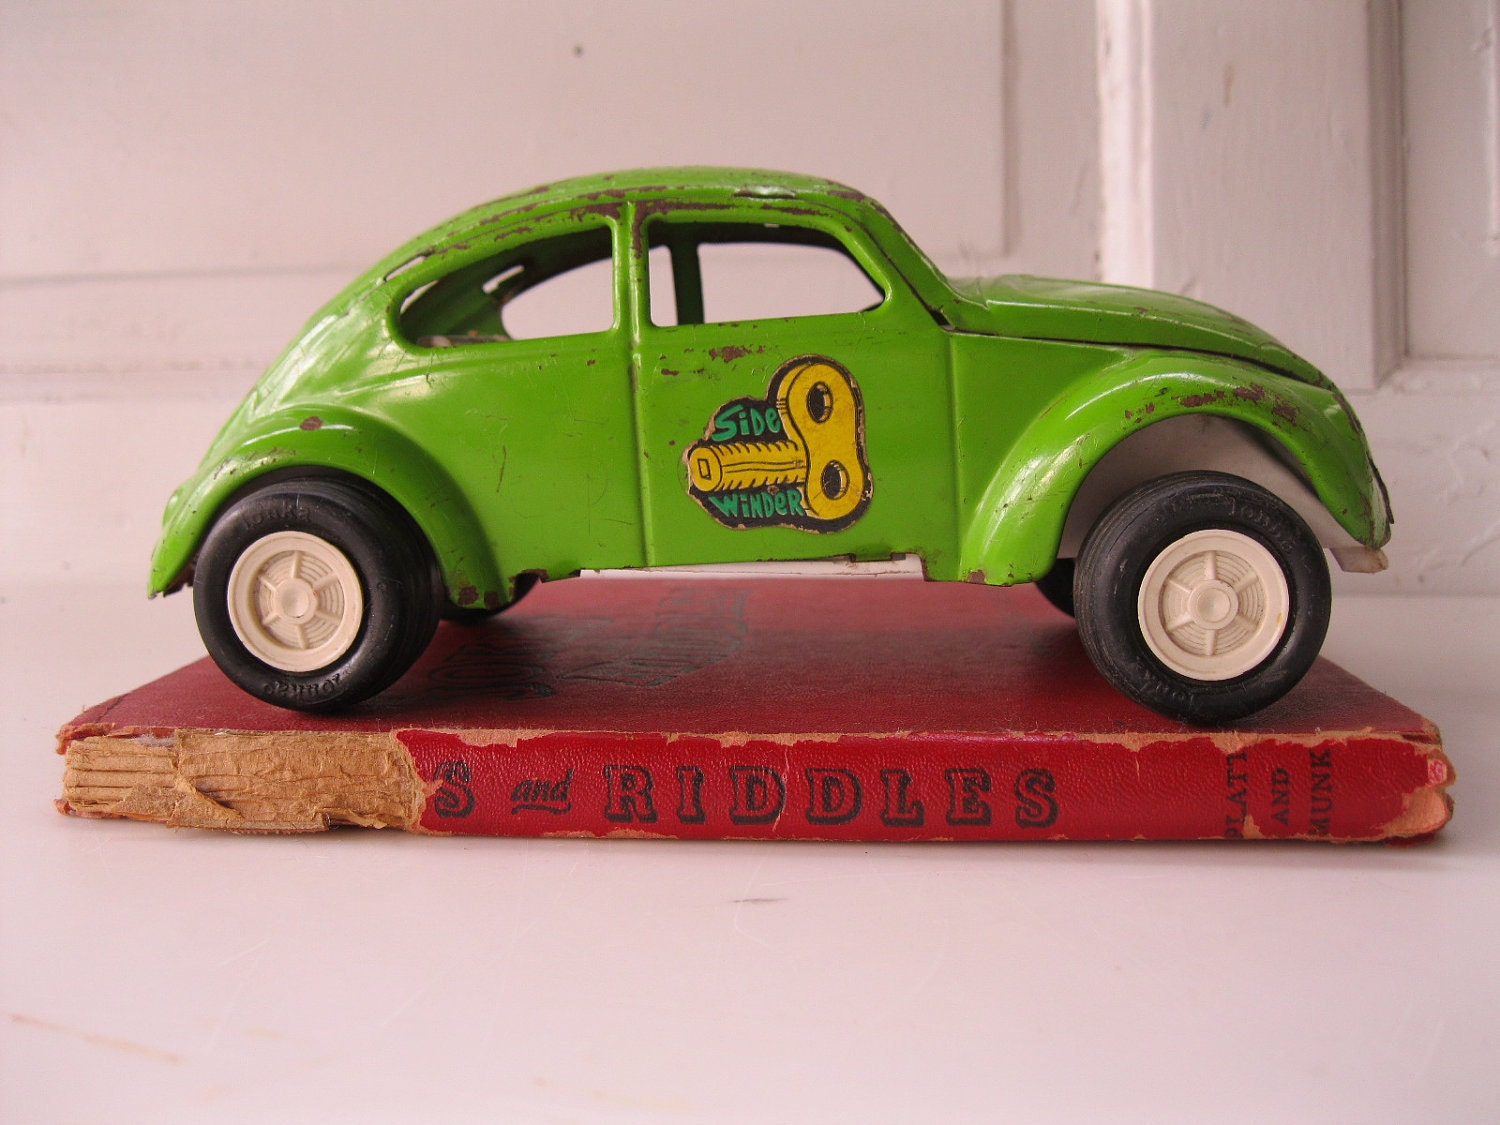 Lime green vintage VW bug toy car